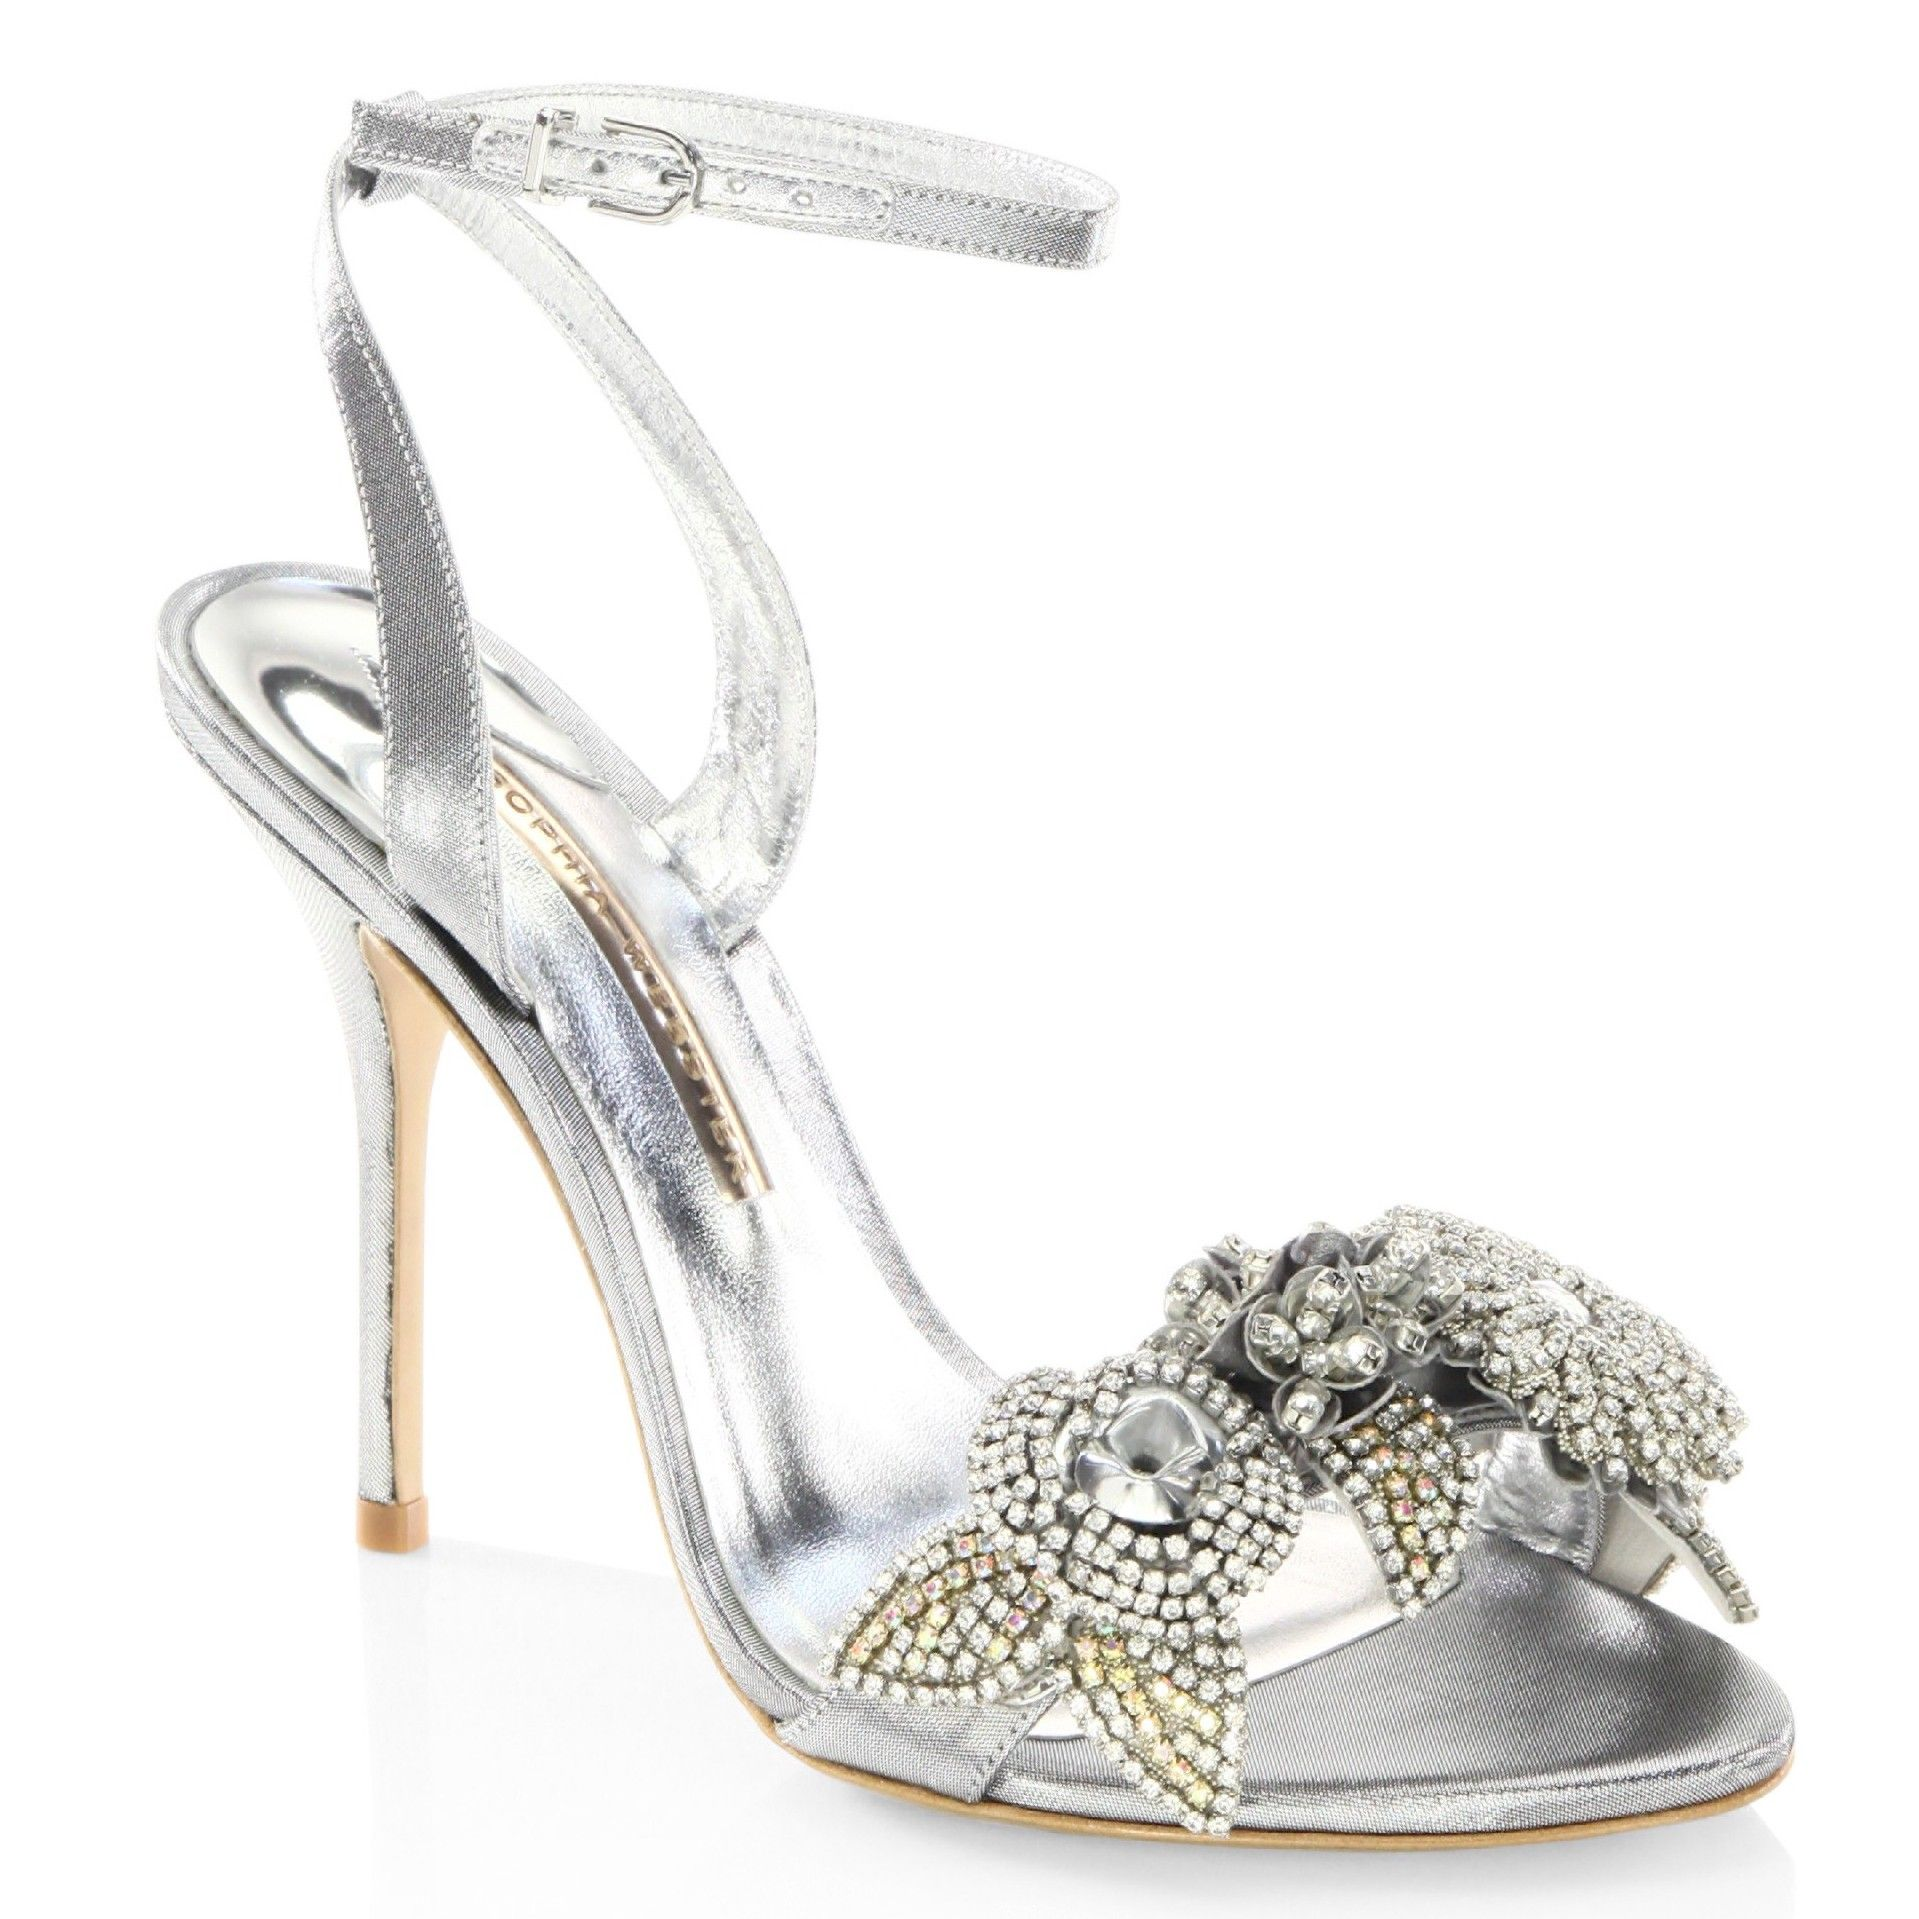 SOPHIA WEBSTER Rhinestone embellished sandals